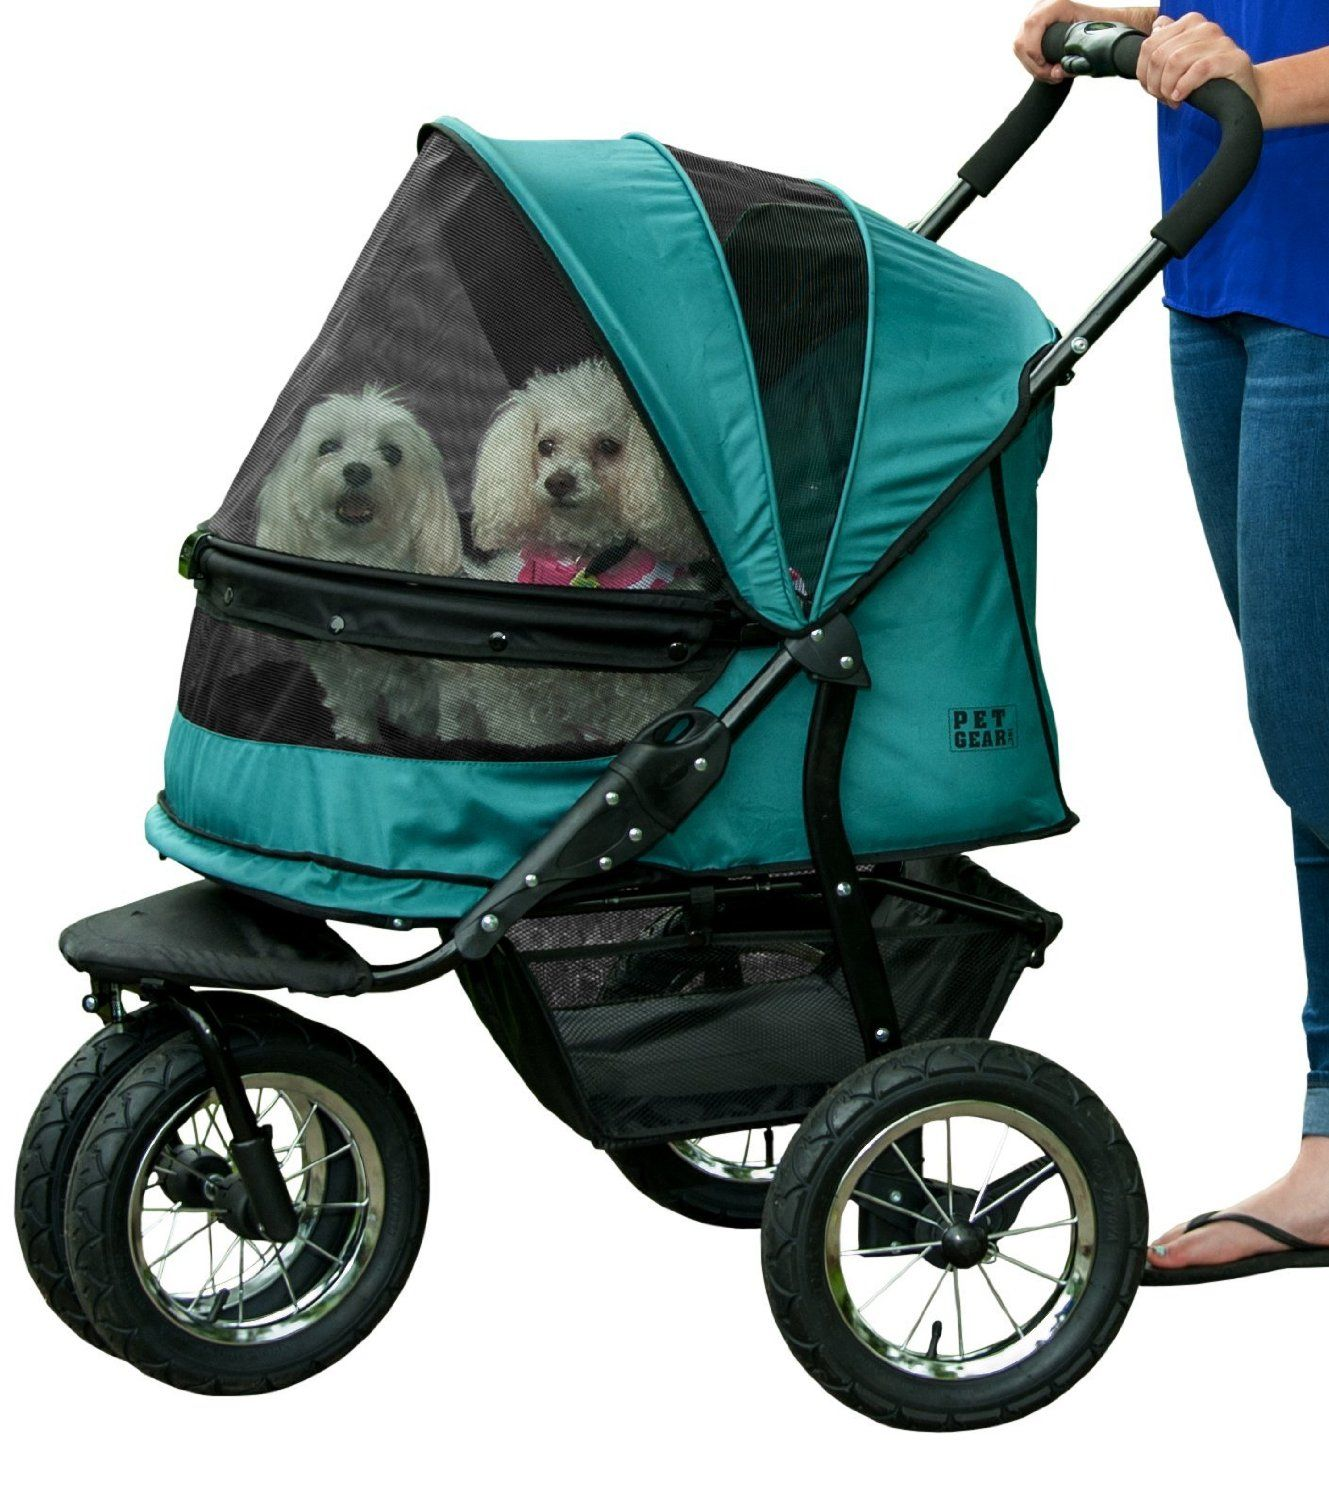 cat Gear NoZip Double cat Stroller > Amazing product just